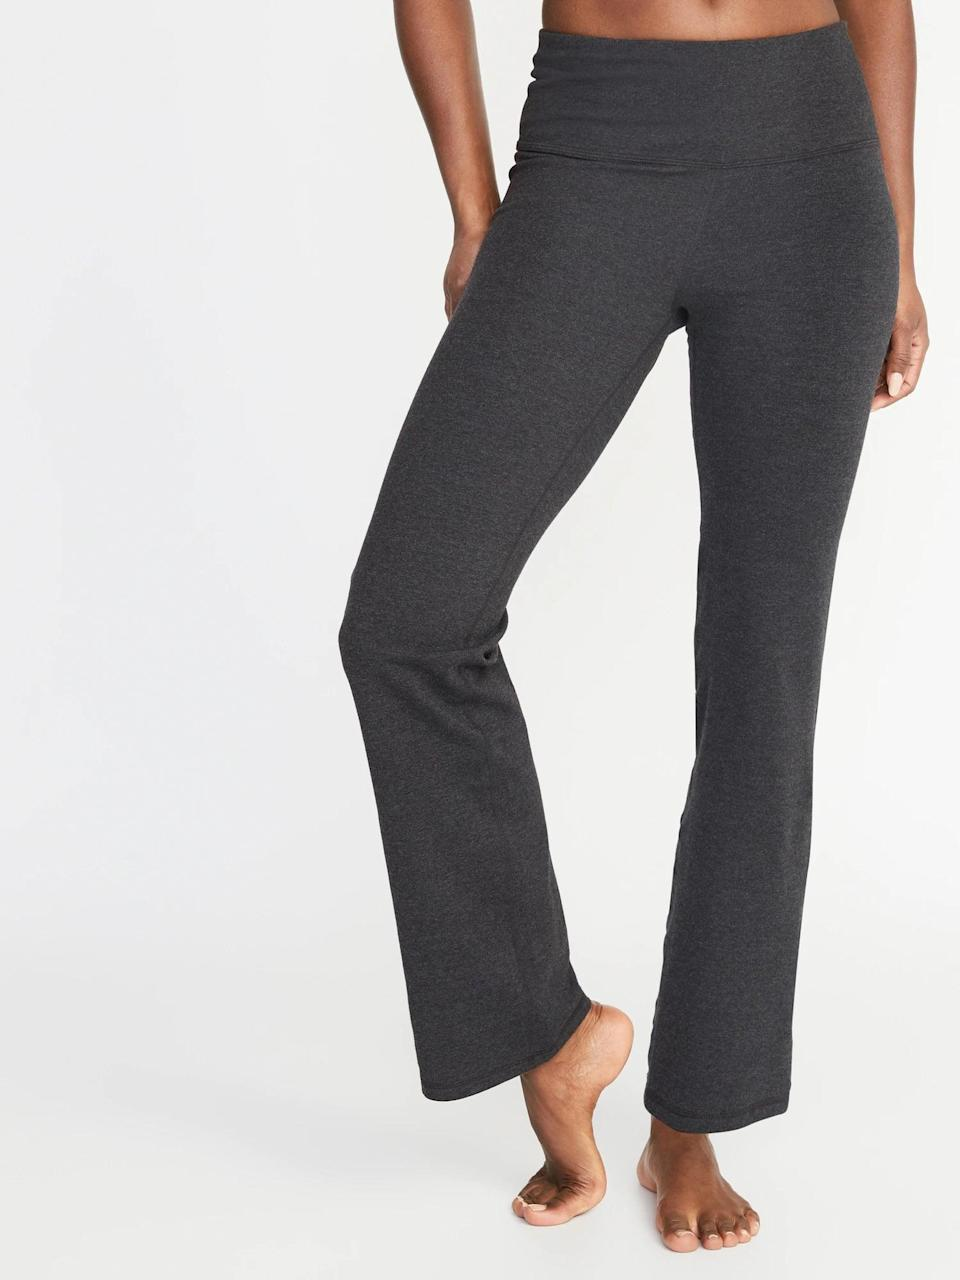 <p>We bet you'll keep the <span>Old Navy High-Waisted Slim Boot-Cut Yoga Pants</span> ($8-$9, originally $25) or <span>Old Navy Mid-Rise Wide-Leg Yoga Pants</span> ($8, originally $25) on long after your flow is finished.</p>